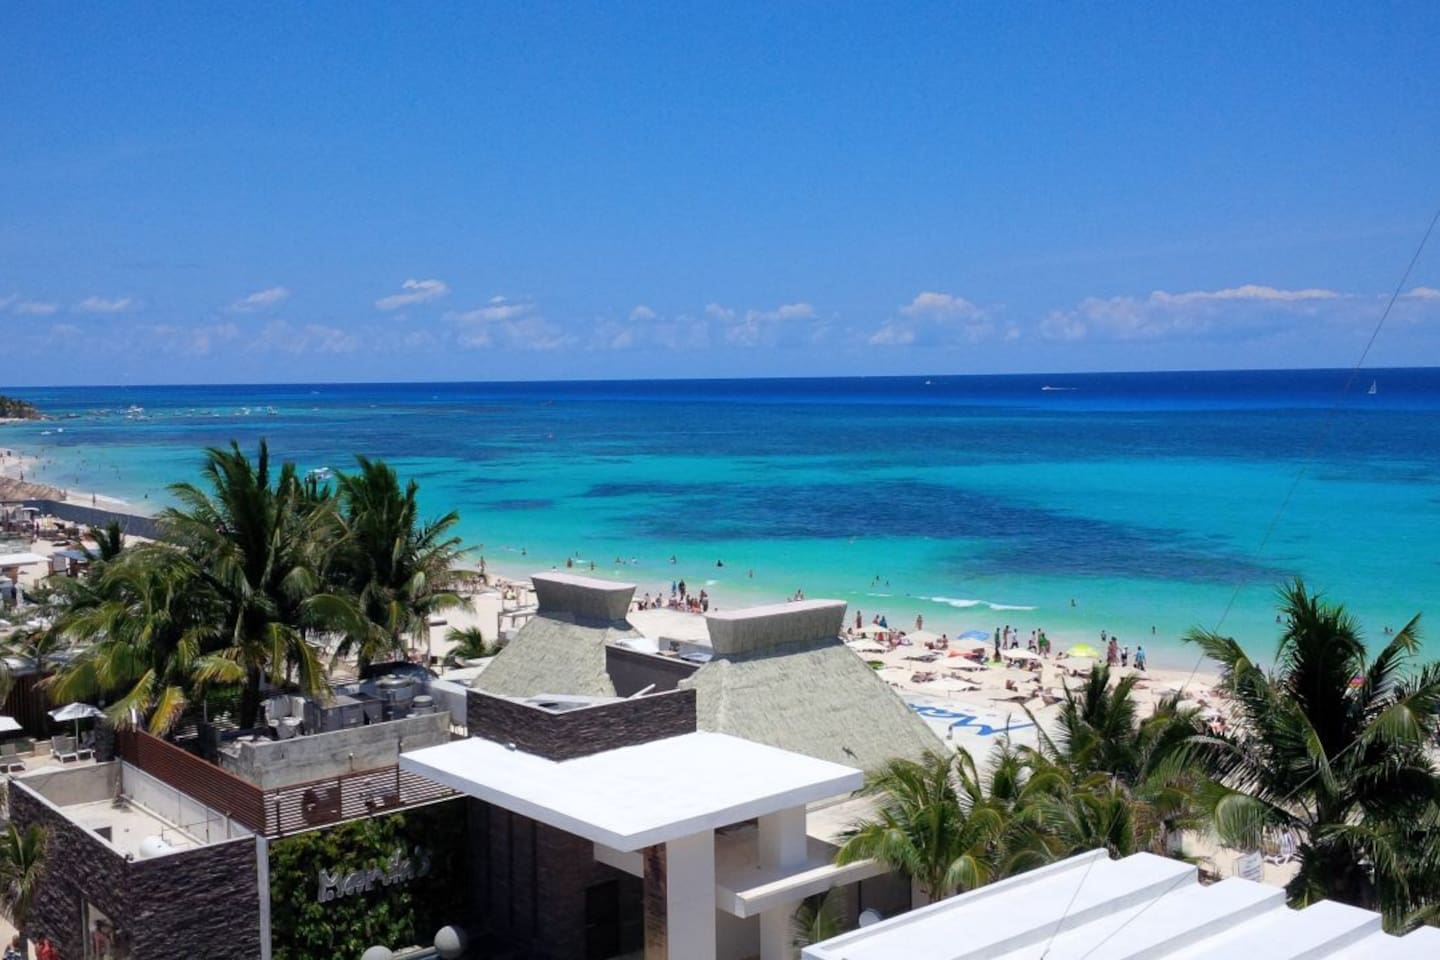 Beautiful look of the Amazing and Breathtaking Mamitas Beach in Playa Del Carmen from an Aerial view above the condo's balcony.